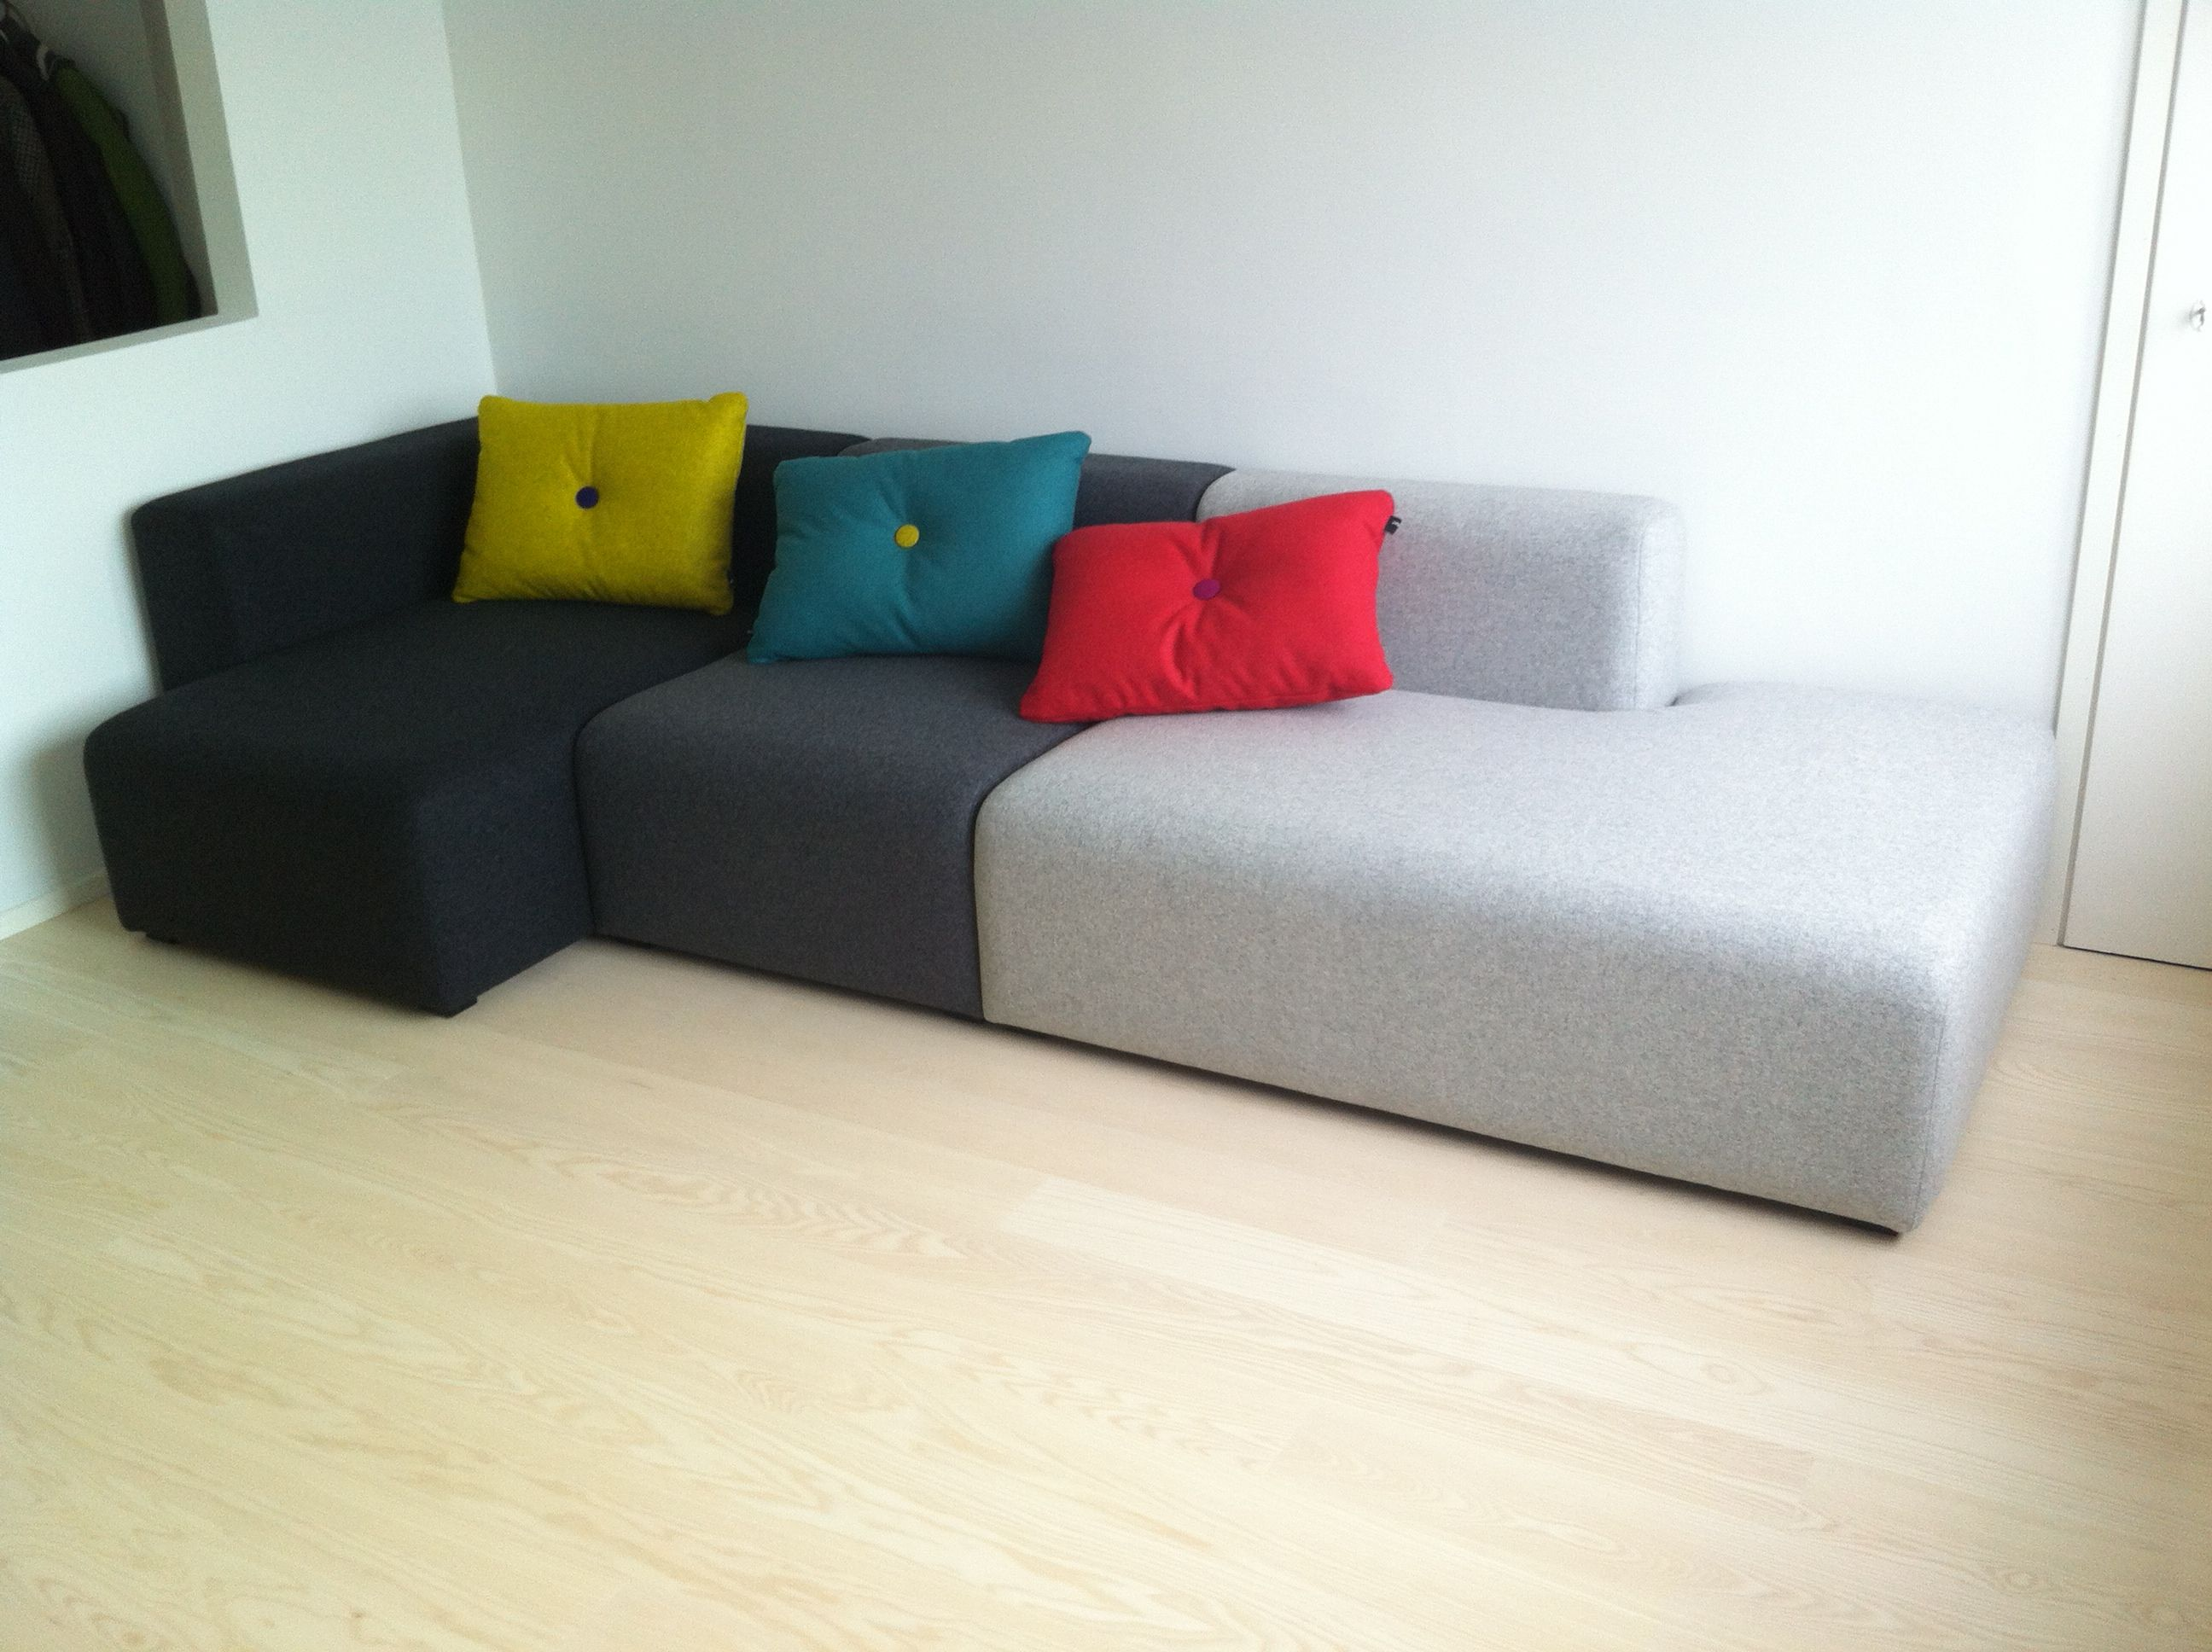 hay mags sofa fabrics sectional red leather chriztee and home pinterest interiors